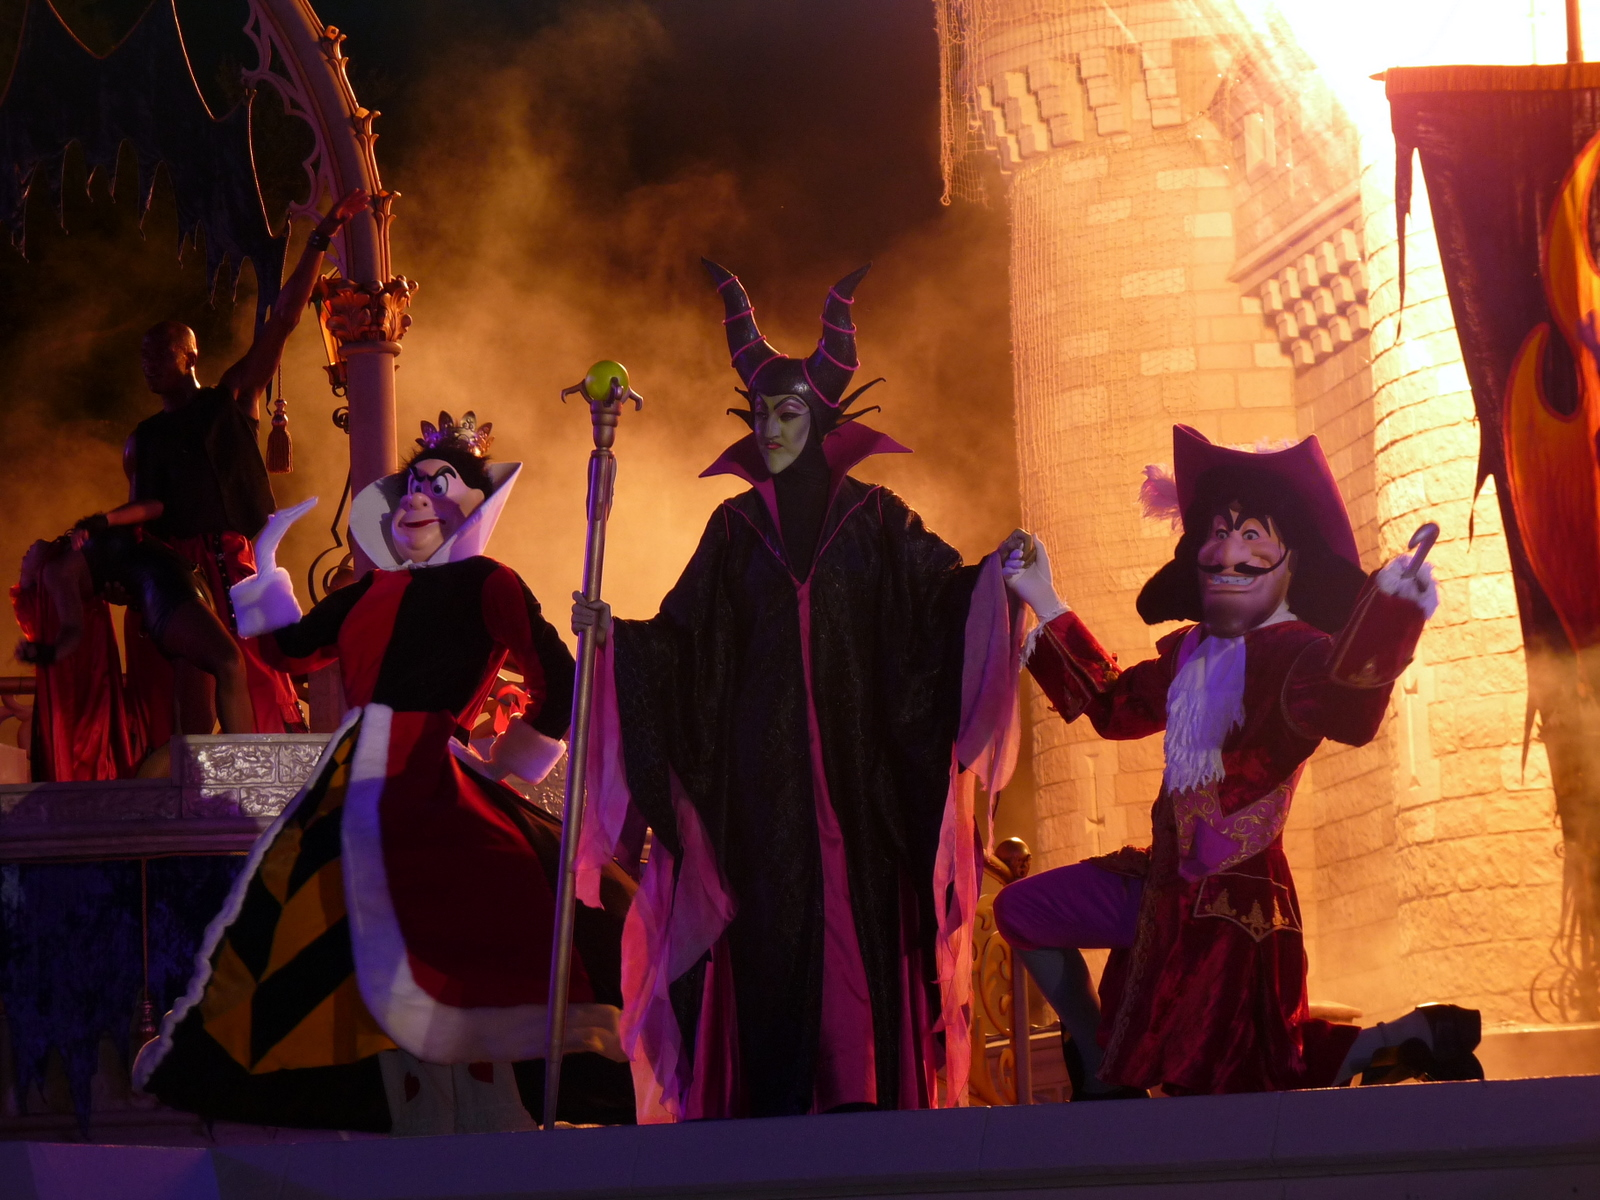 File:Disney Villains at Mickey's Not So Scary Halloween Party 2009 ...